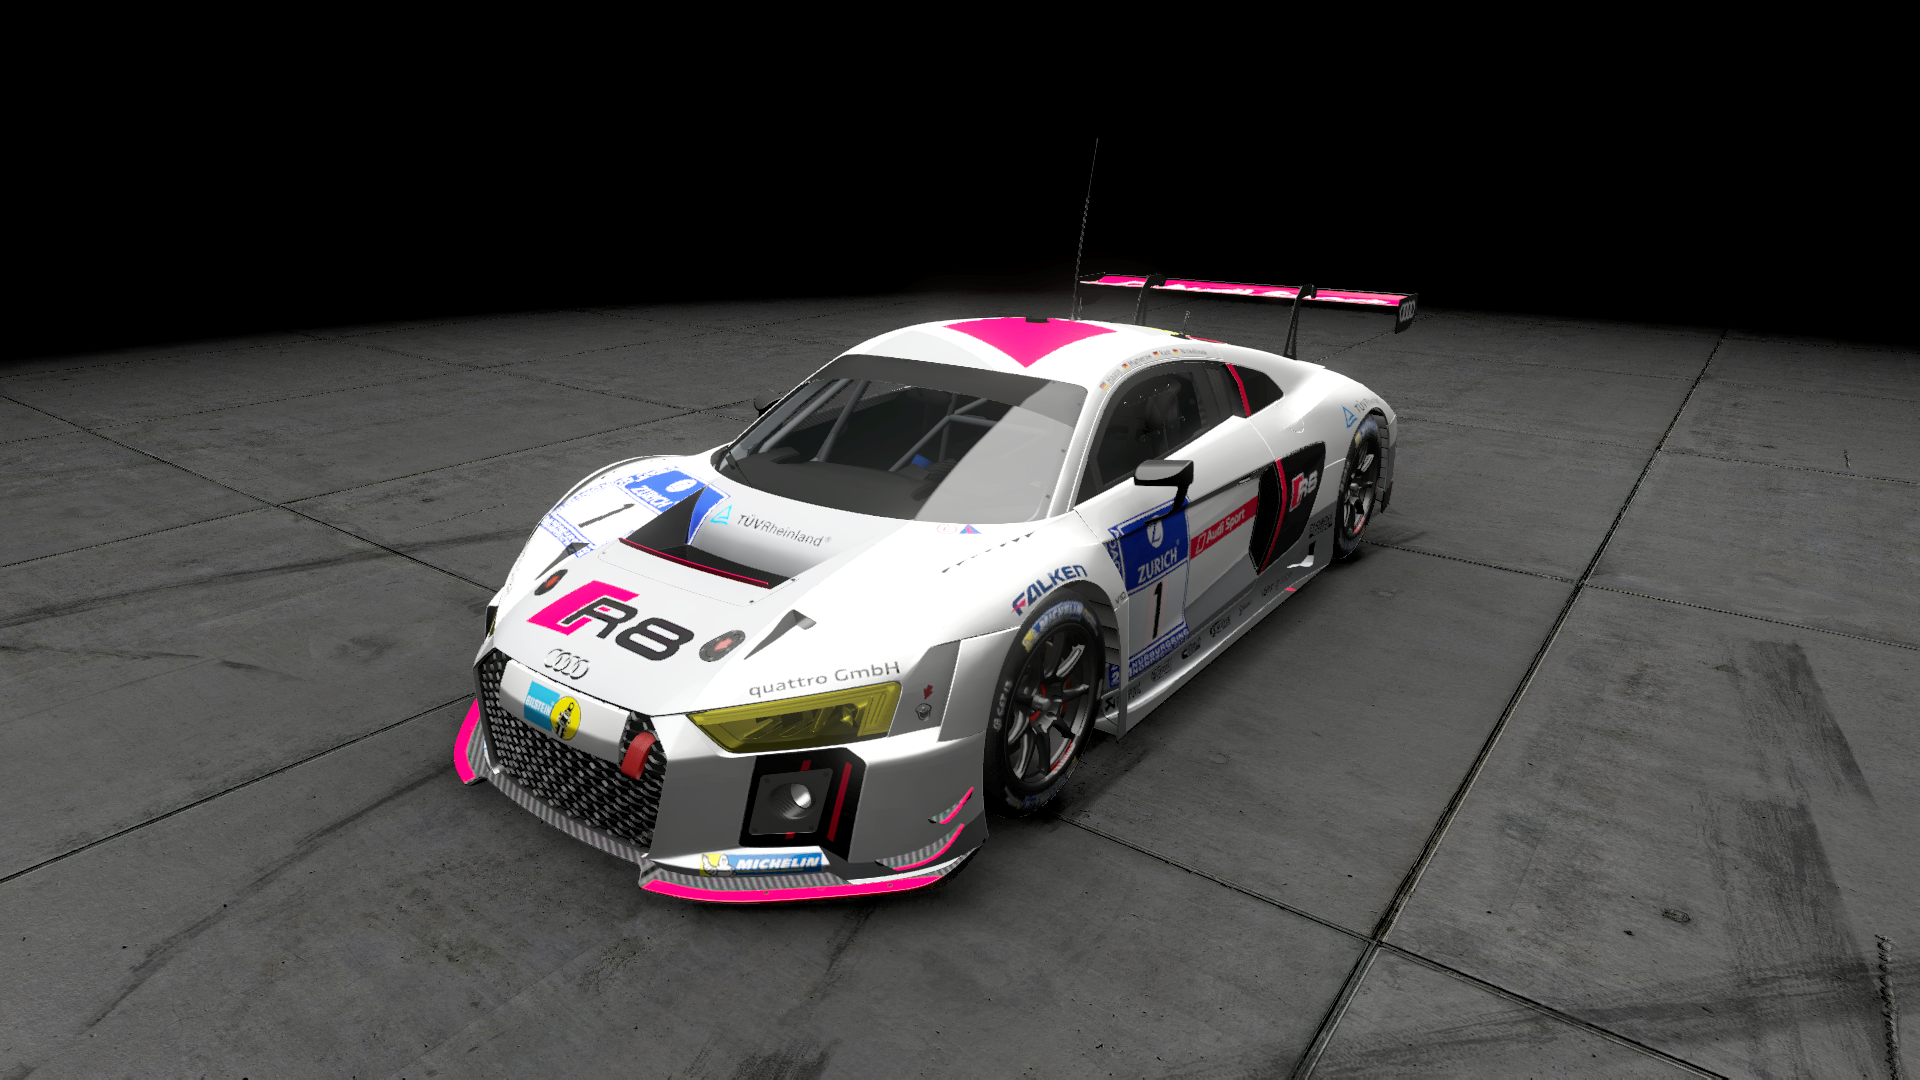 Audi R8 Lms Endurance Projectcars Wiki Fandom Powered By Wikia